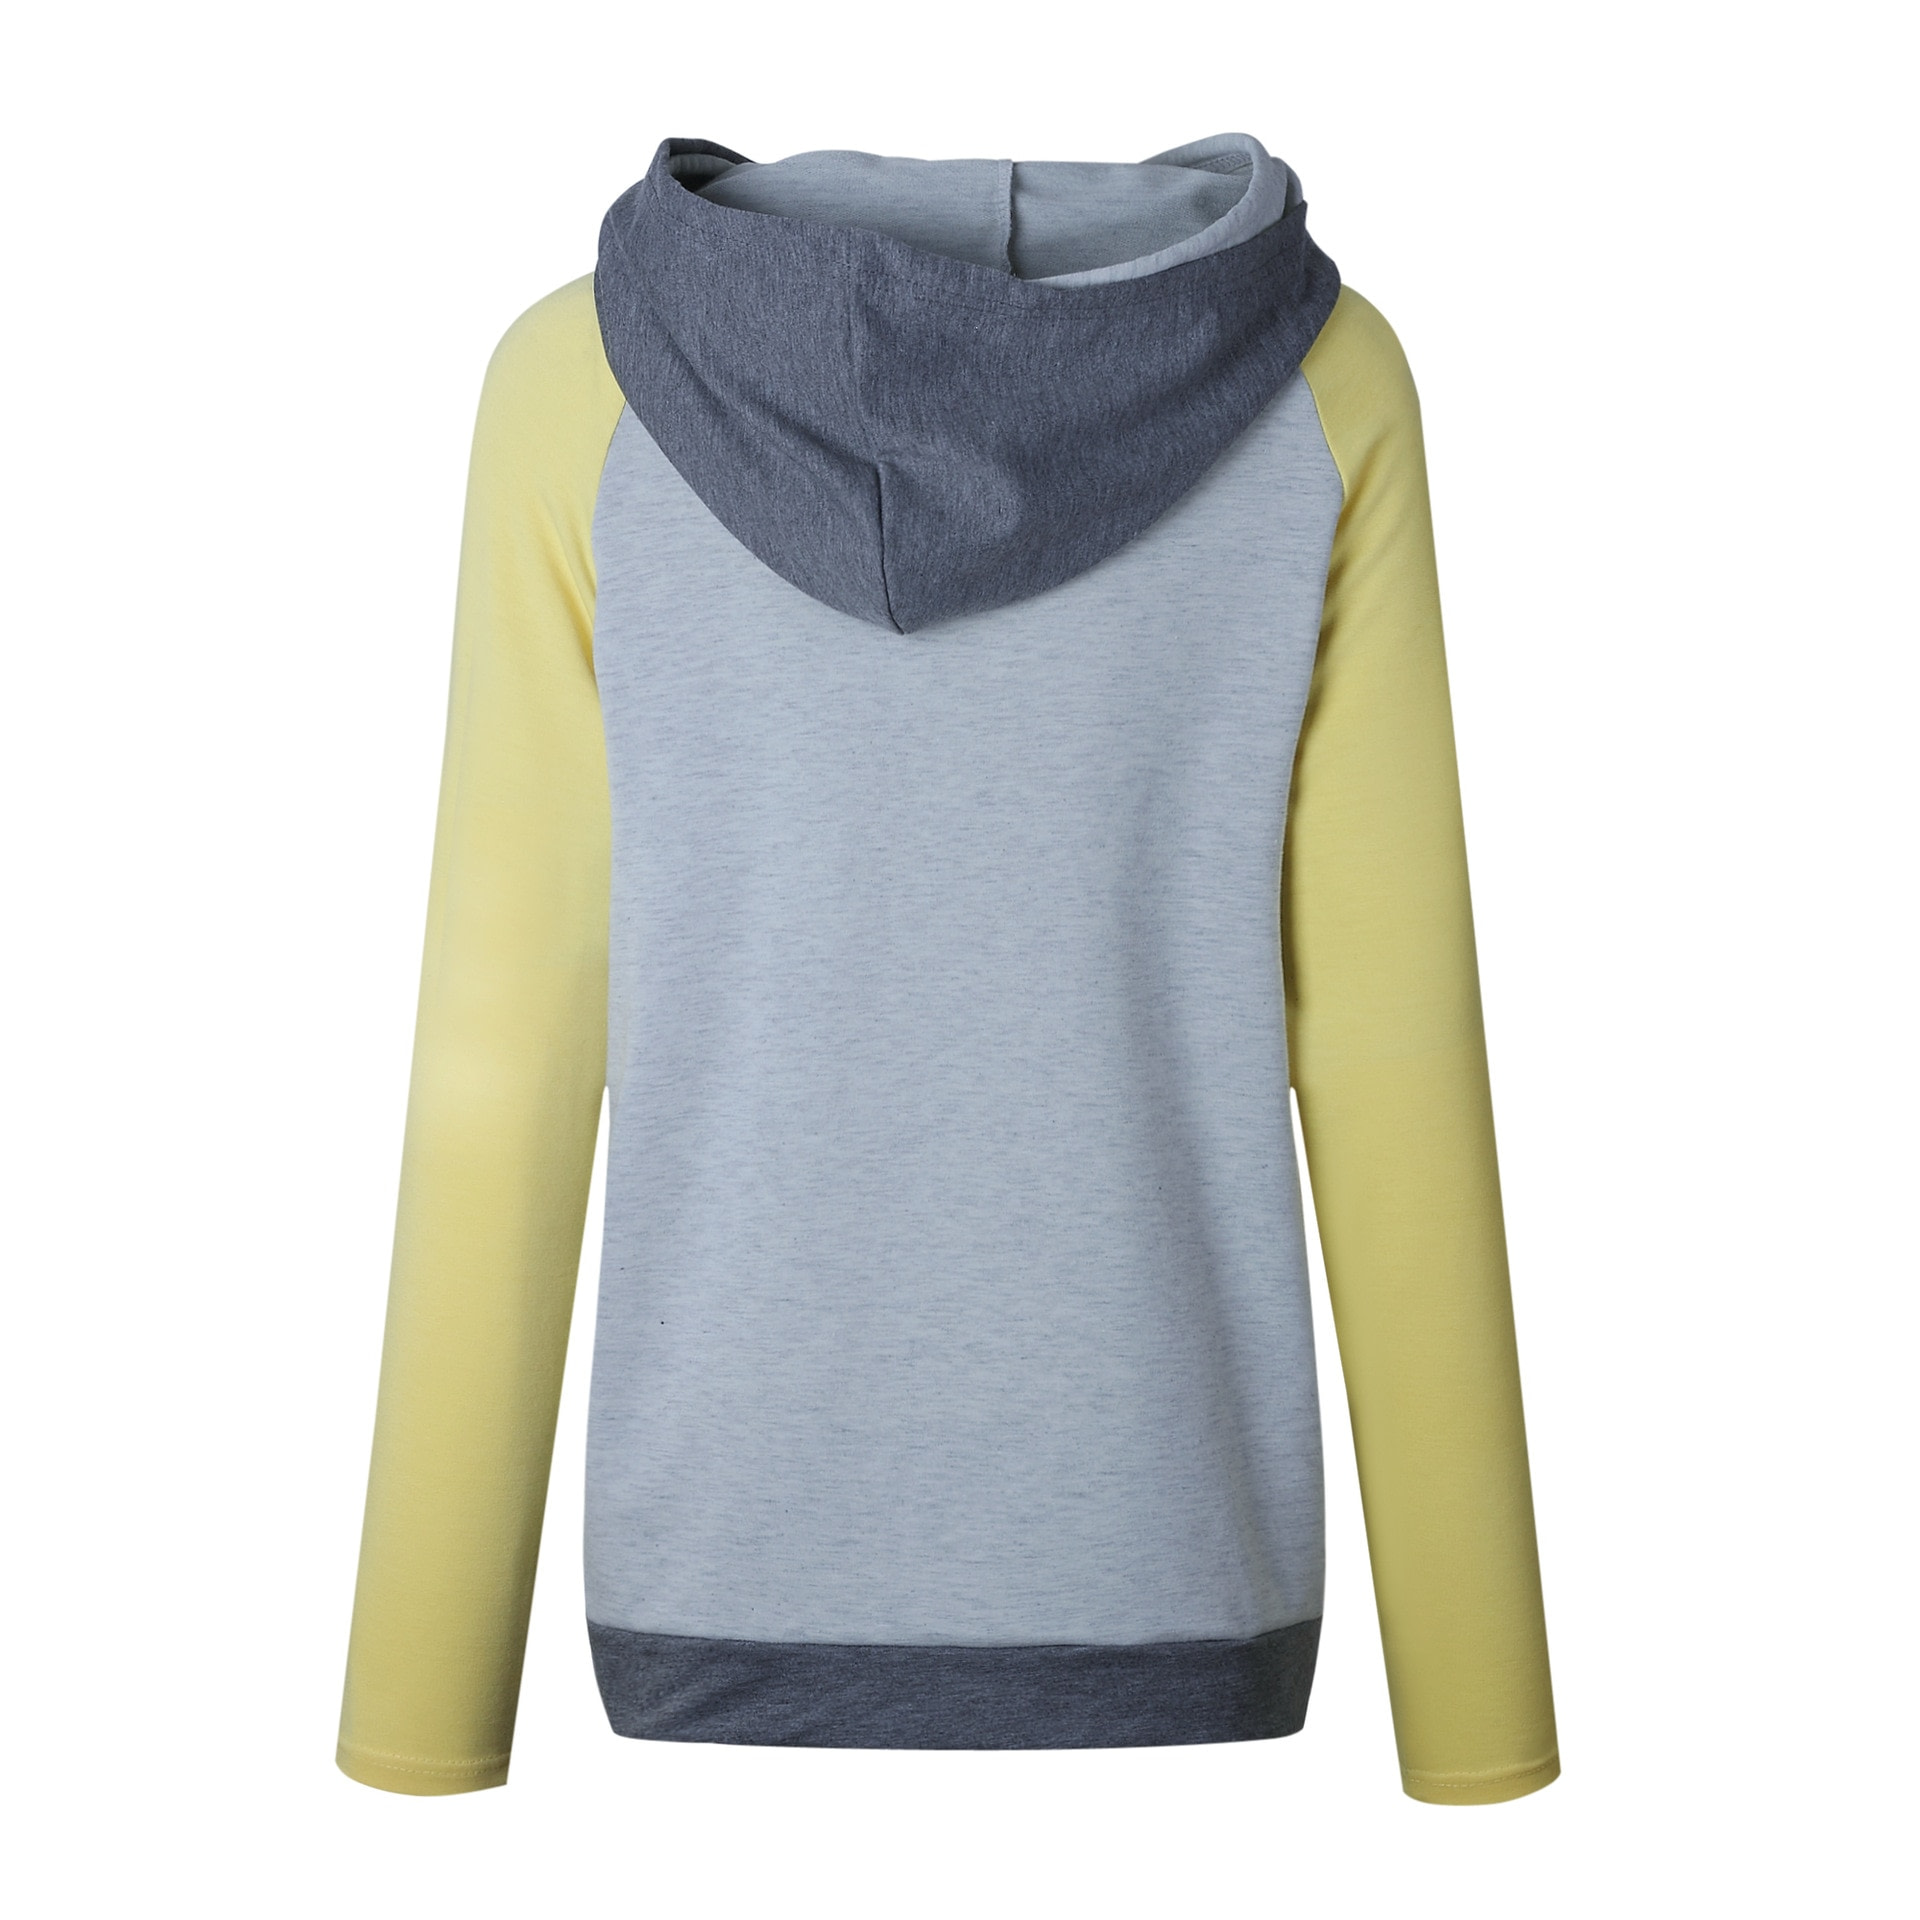 Women's Patchwork Striped Pullover Long Sleeve Hoodie, Tops With Pockets, Hooded Sweatshirt 51